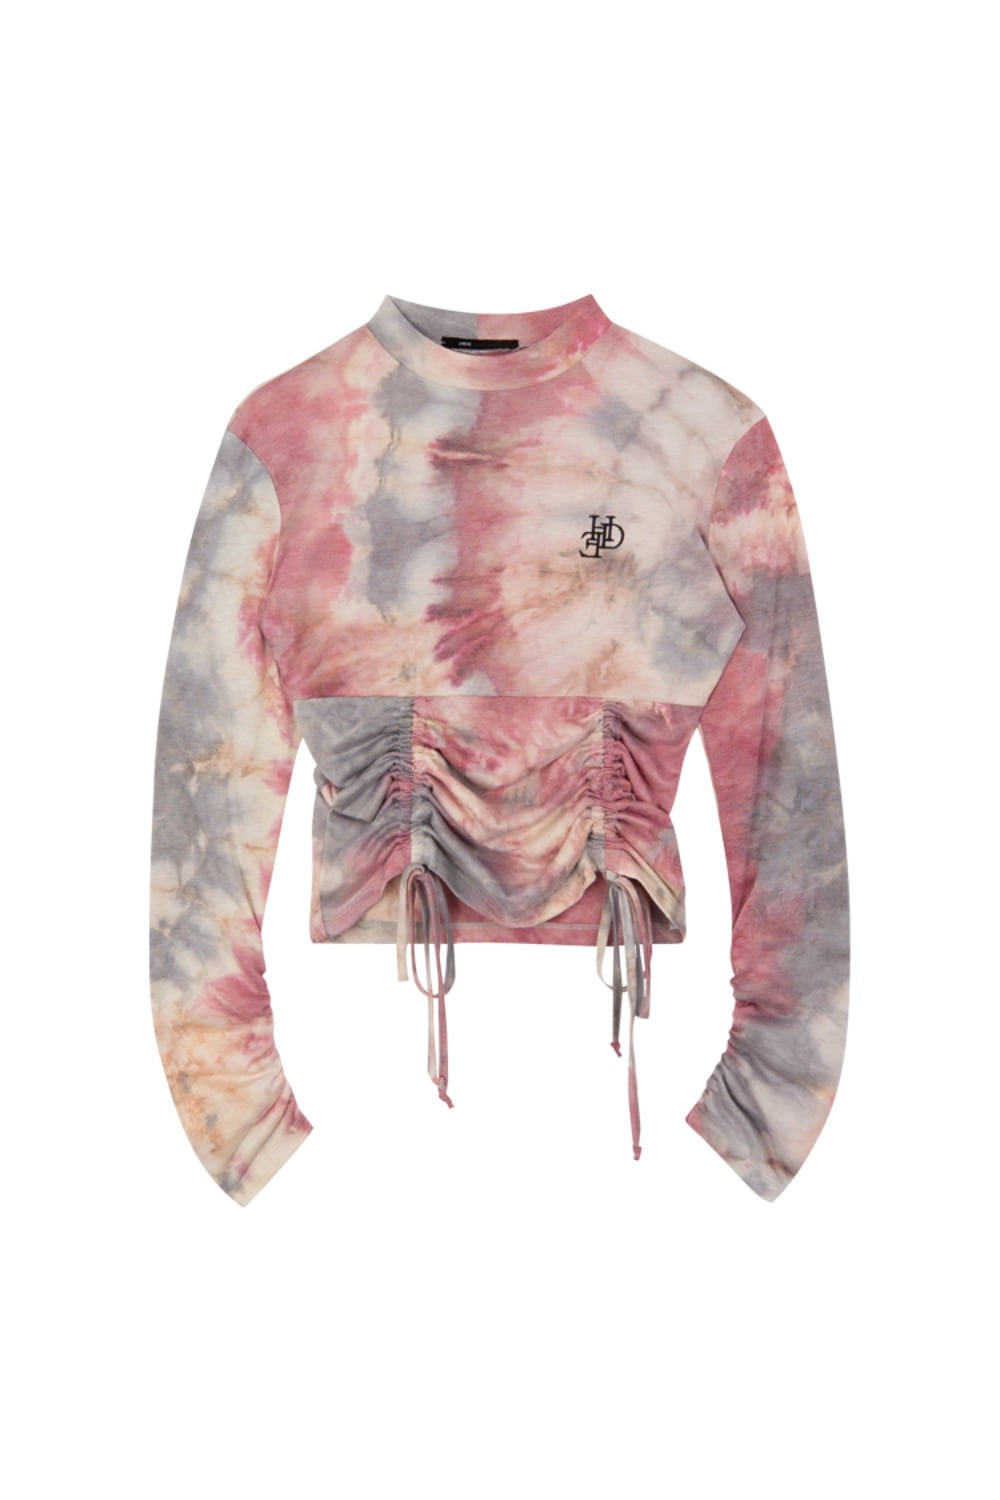 HIDE Tie Dye String Top DARK PINK